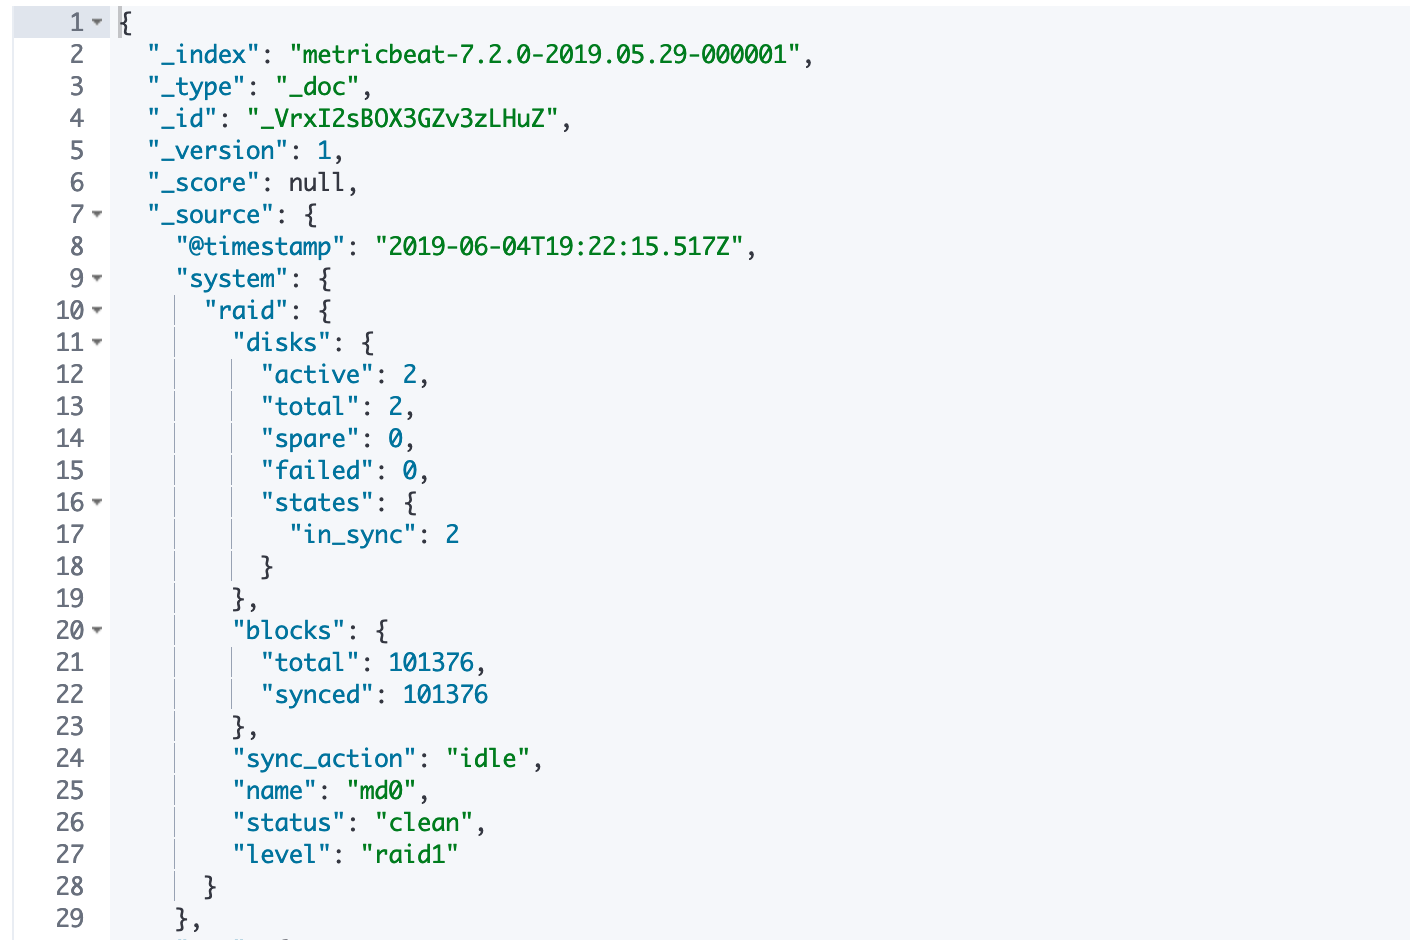 JSON result of looking for events from the RAID metricset